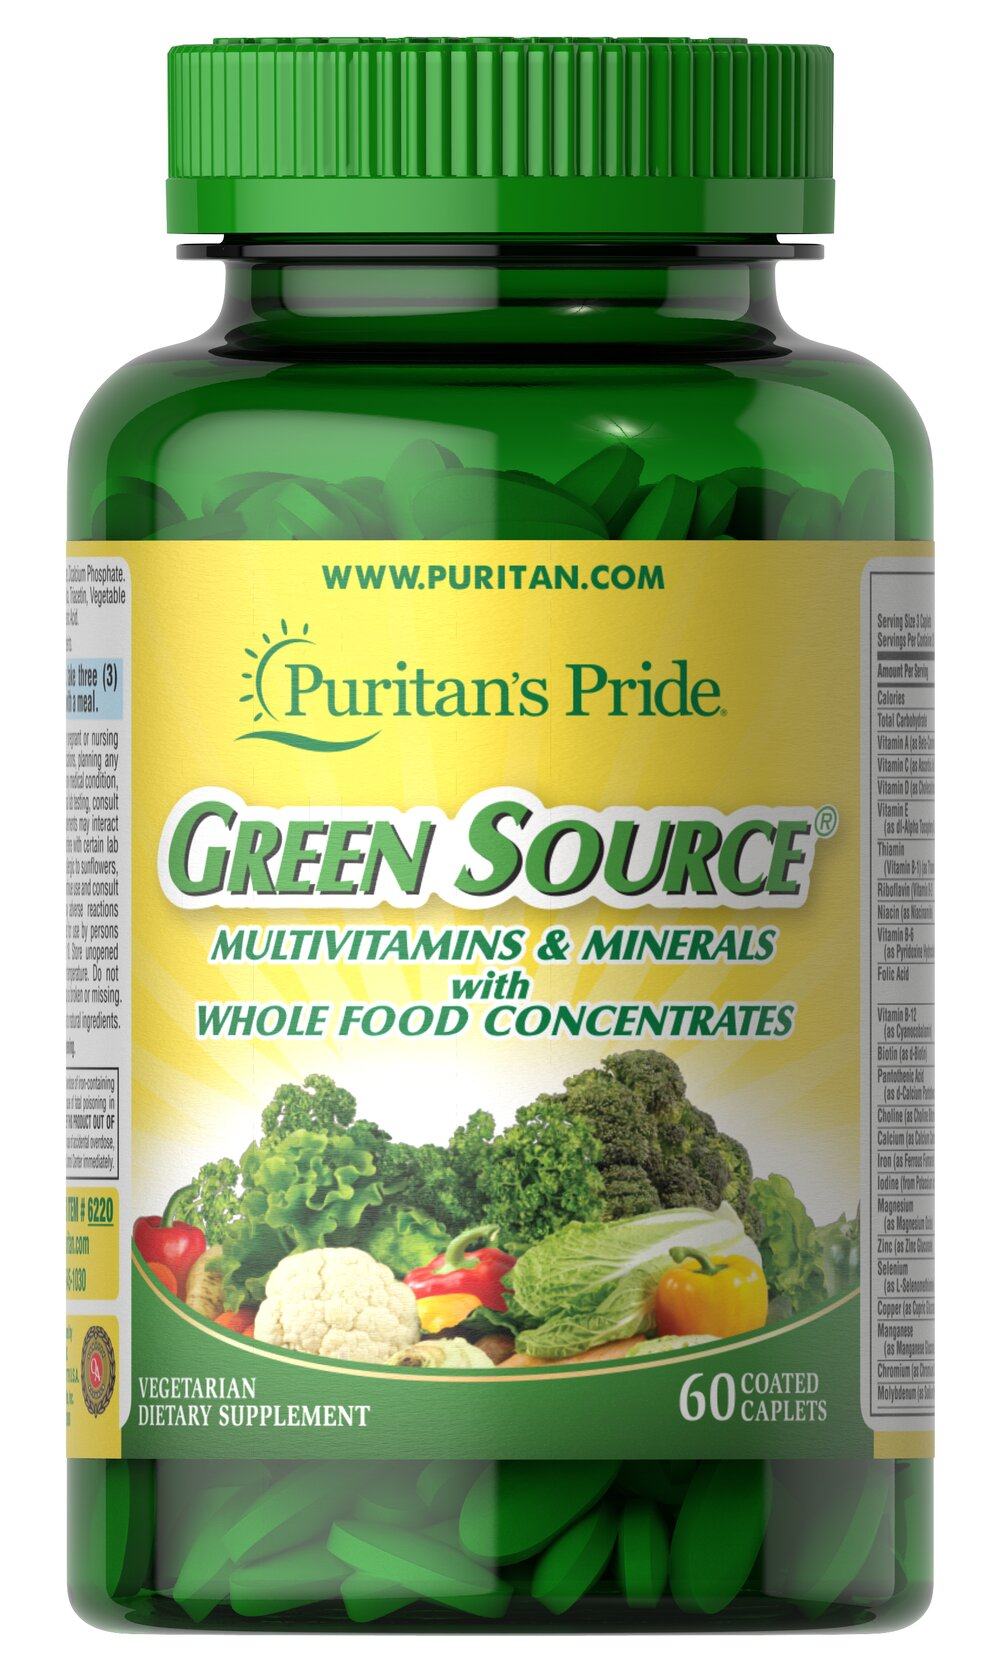 Green Source® Multivitamin & Minerals <p>This concentrated formula contains potent food source nutrients to provide essential vitamins, minerals, enzymes and amino acids. It also provides all the naturally occurring active constituents of whole foods.</p> 60 Caplets  $15.29